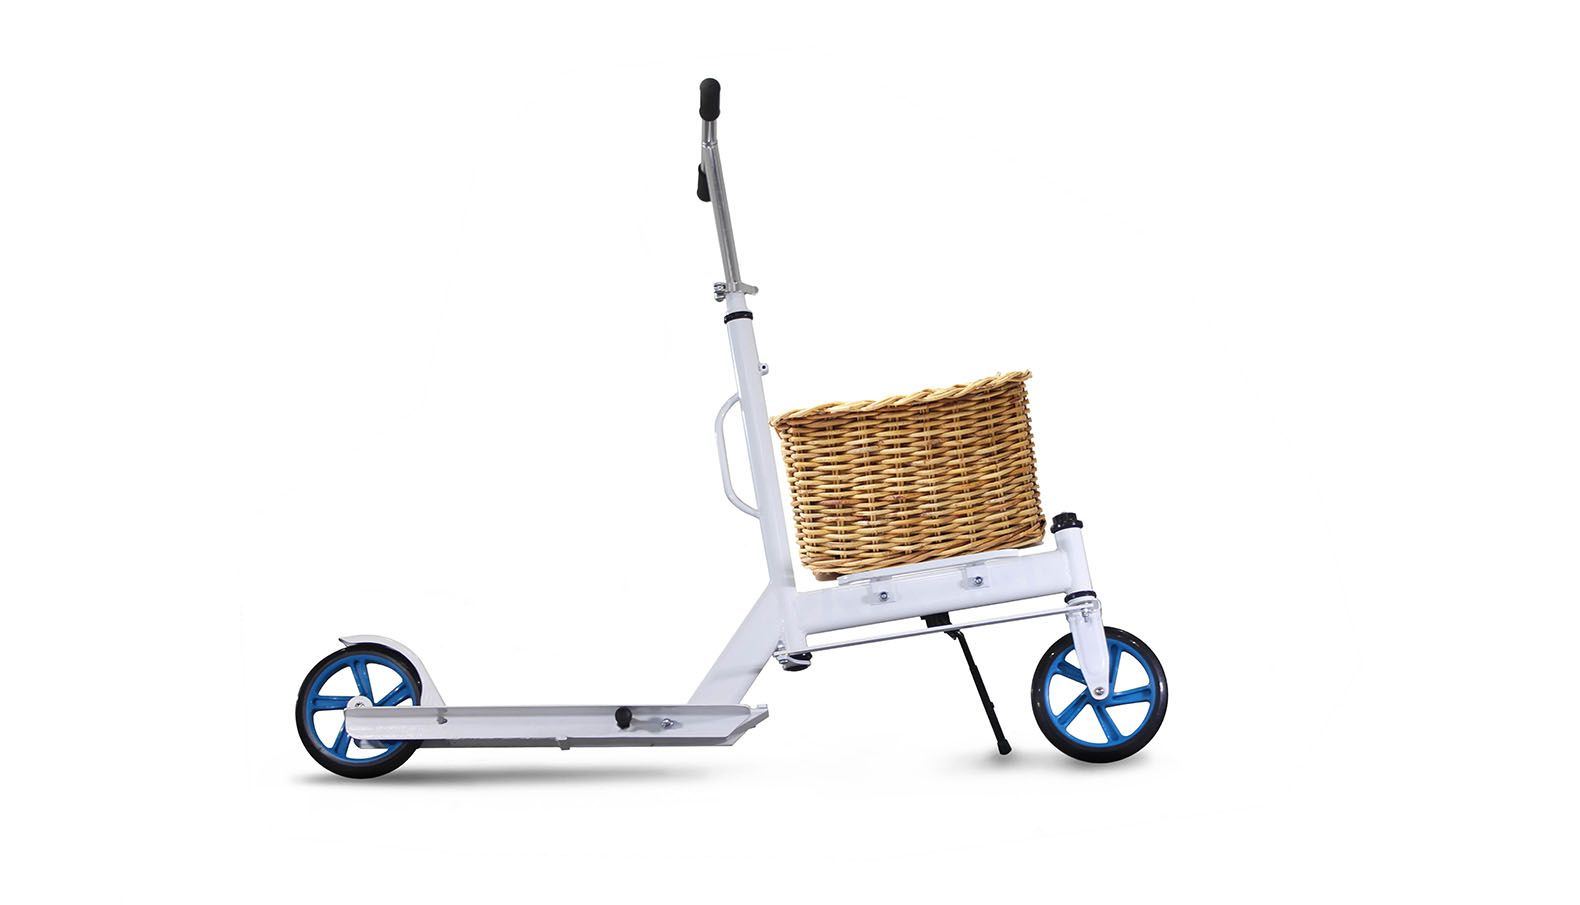 World's first urban cargo scooter carries up to 50 lbs on the go